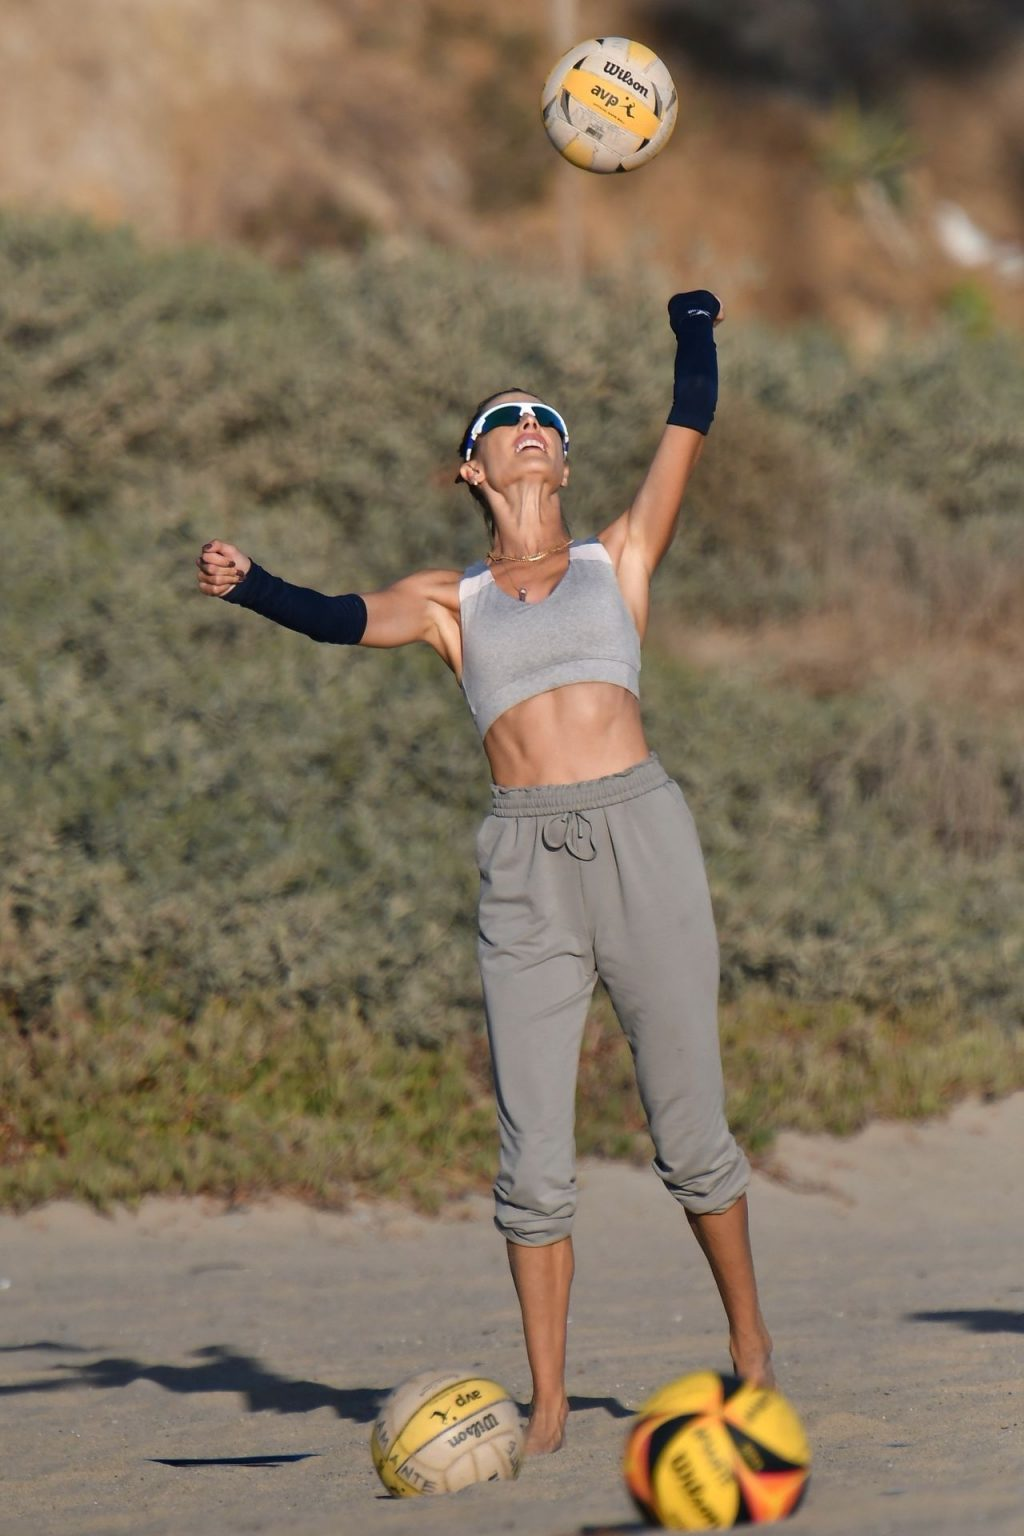 Alessandra Ambrosio Puts in Work on the Sand (132 Photos)